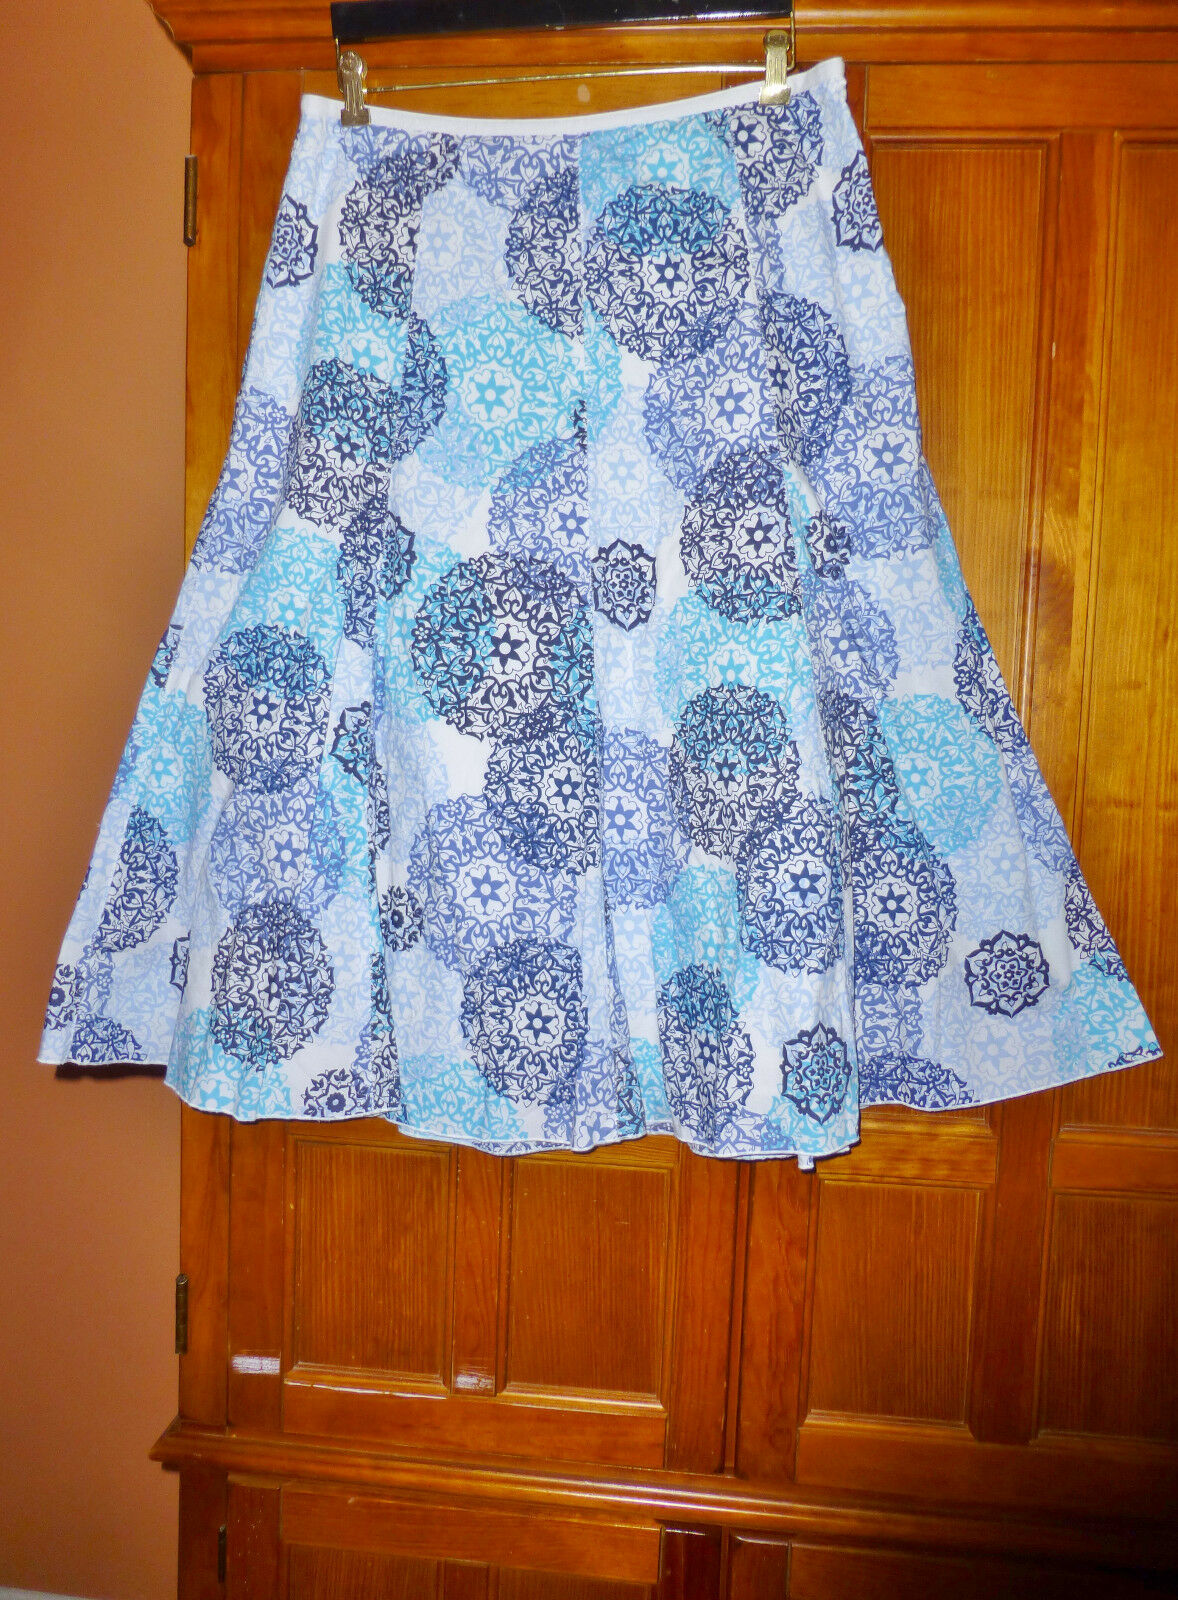 TALBOTS size 16 P XL Printed Medallions Cotton Boho flared dress SKIRT B105